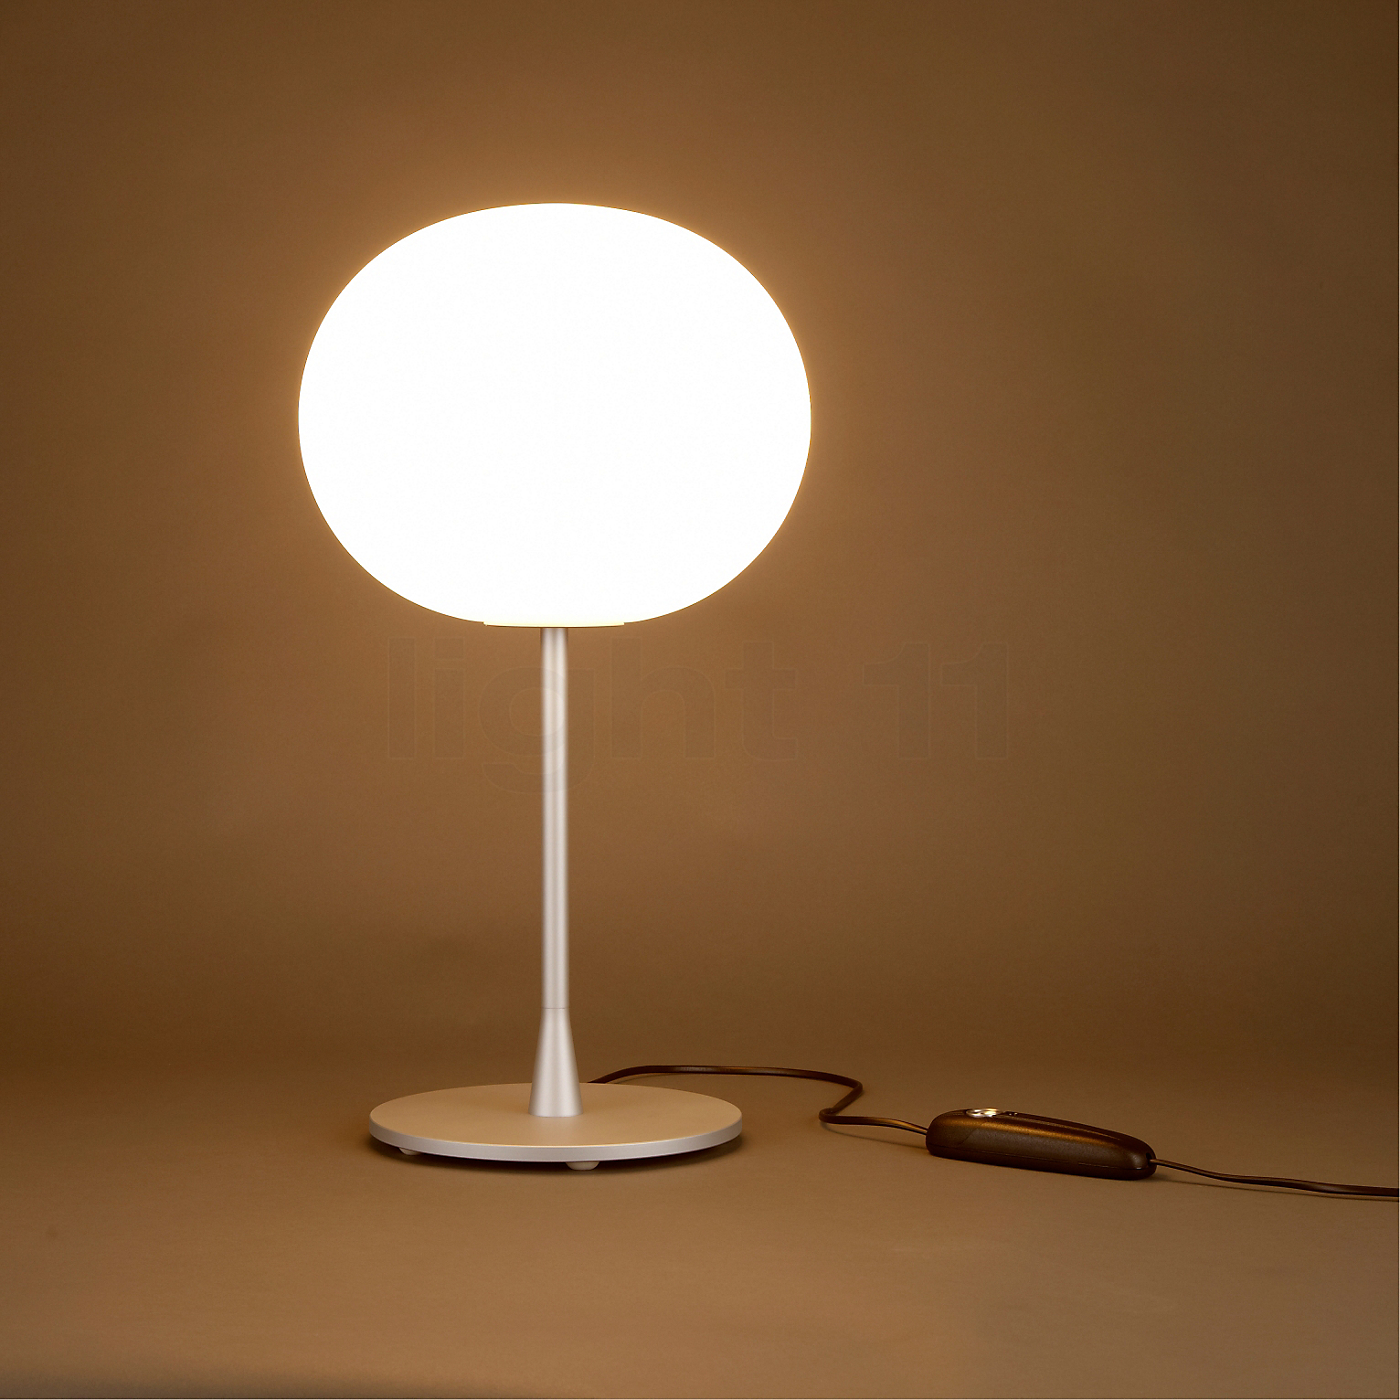 flos glo ball t1 lampe de chevet en vente sur. Black Bedroom Furniture Sets. Home Design Ideas